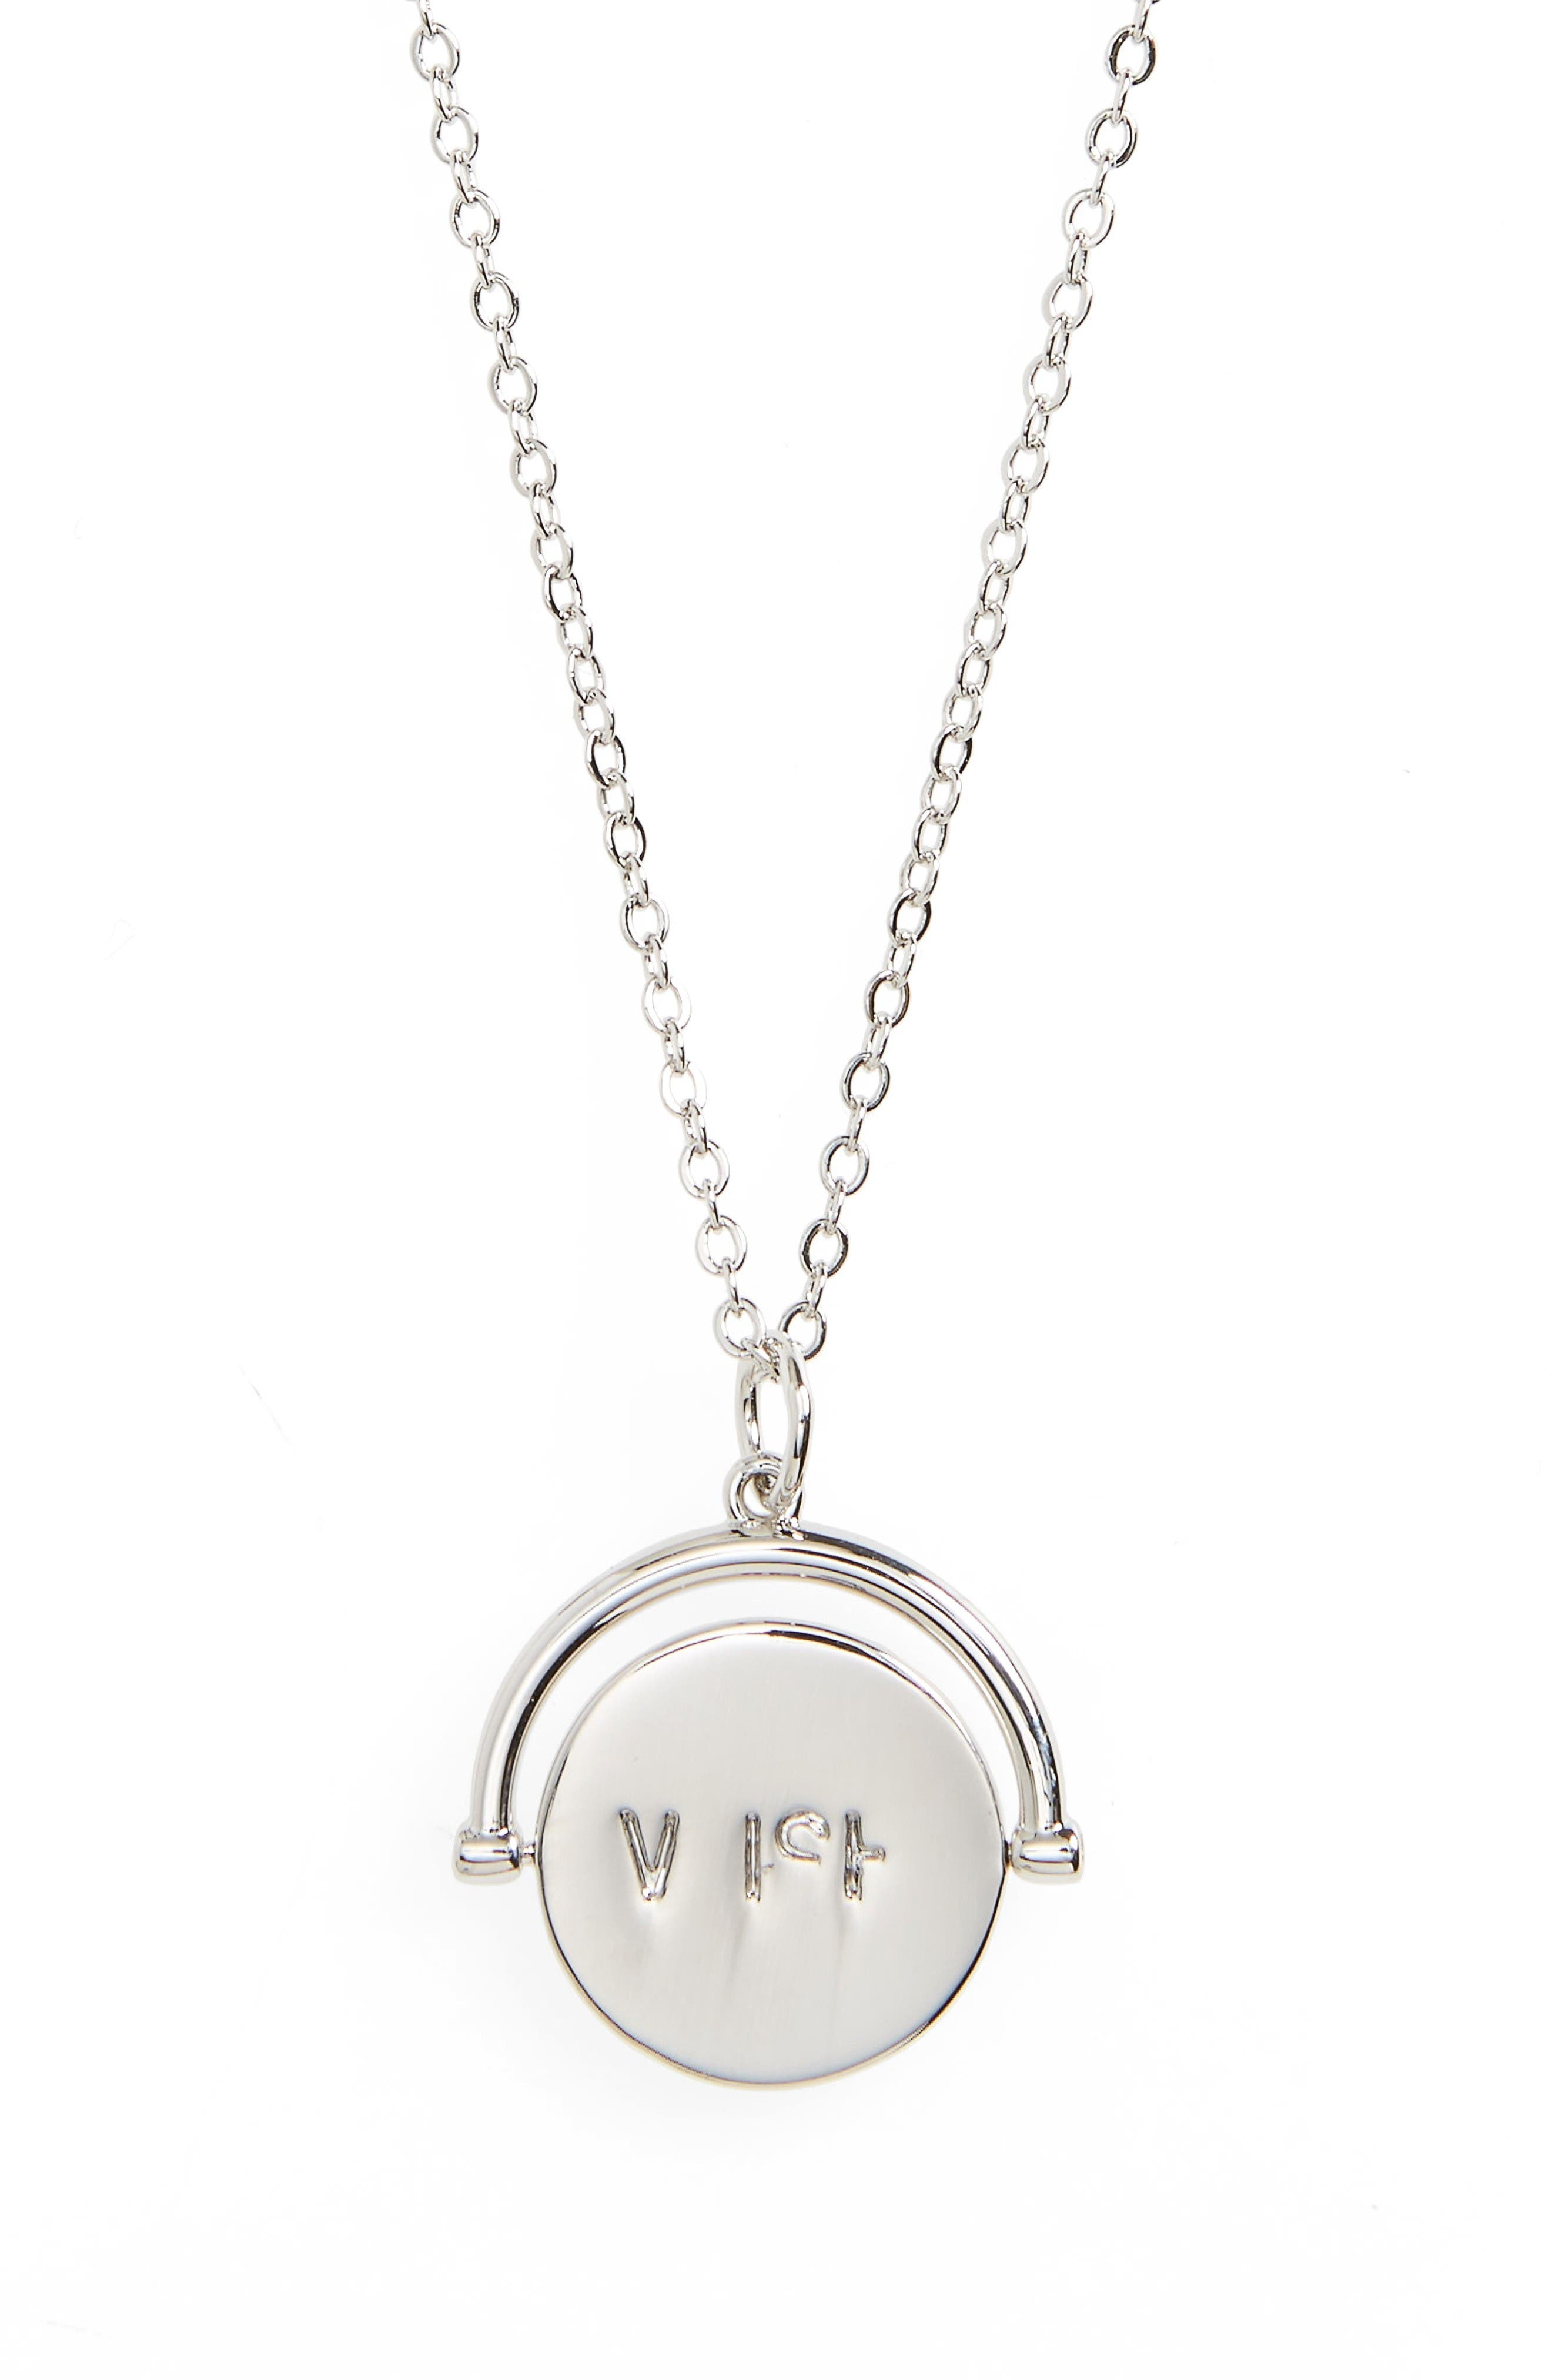 Wish Love Code Charm Necklace,                             Main thumbnail 1, color,                             Wish/ Silver